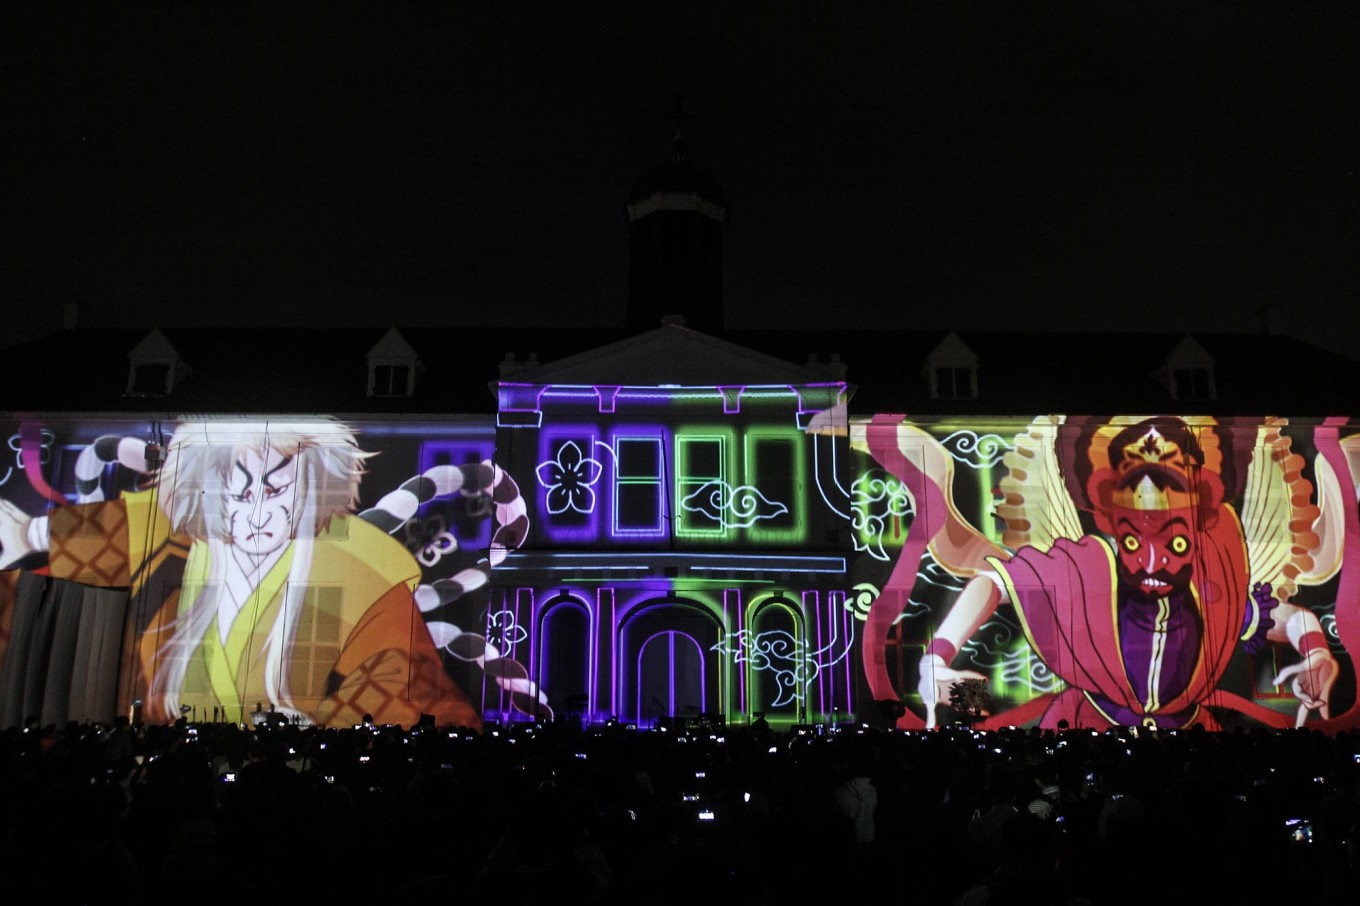 People watch images from video mapping reflected on the wall of Fatahillah Museum in Kota Tua, Central Jakarta, as Indonesia and Japan comemmorate 60 years of bilateral relations on Friday, January. 19. The event was attended by Japanese special envoy Toshihiro Nikai. JP/Ben Latuihamallo